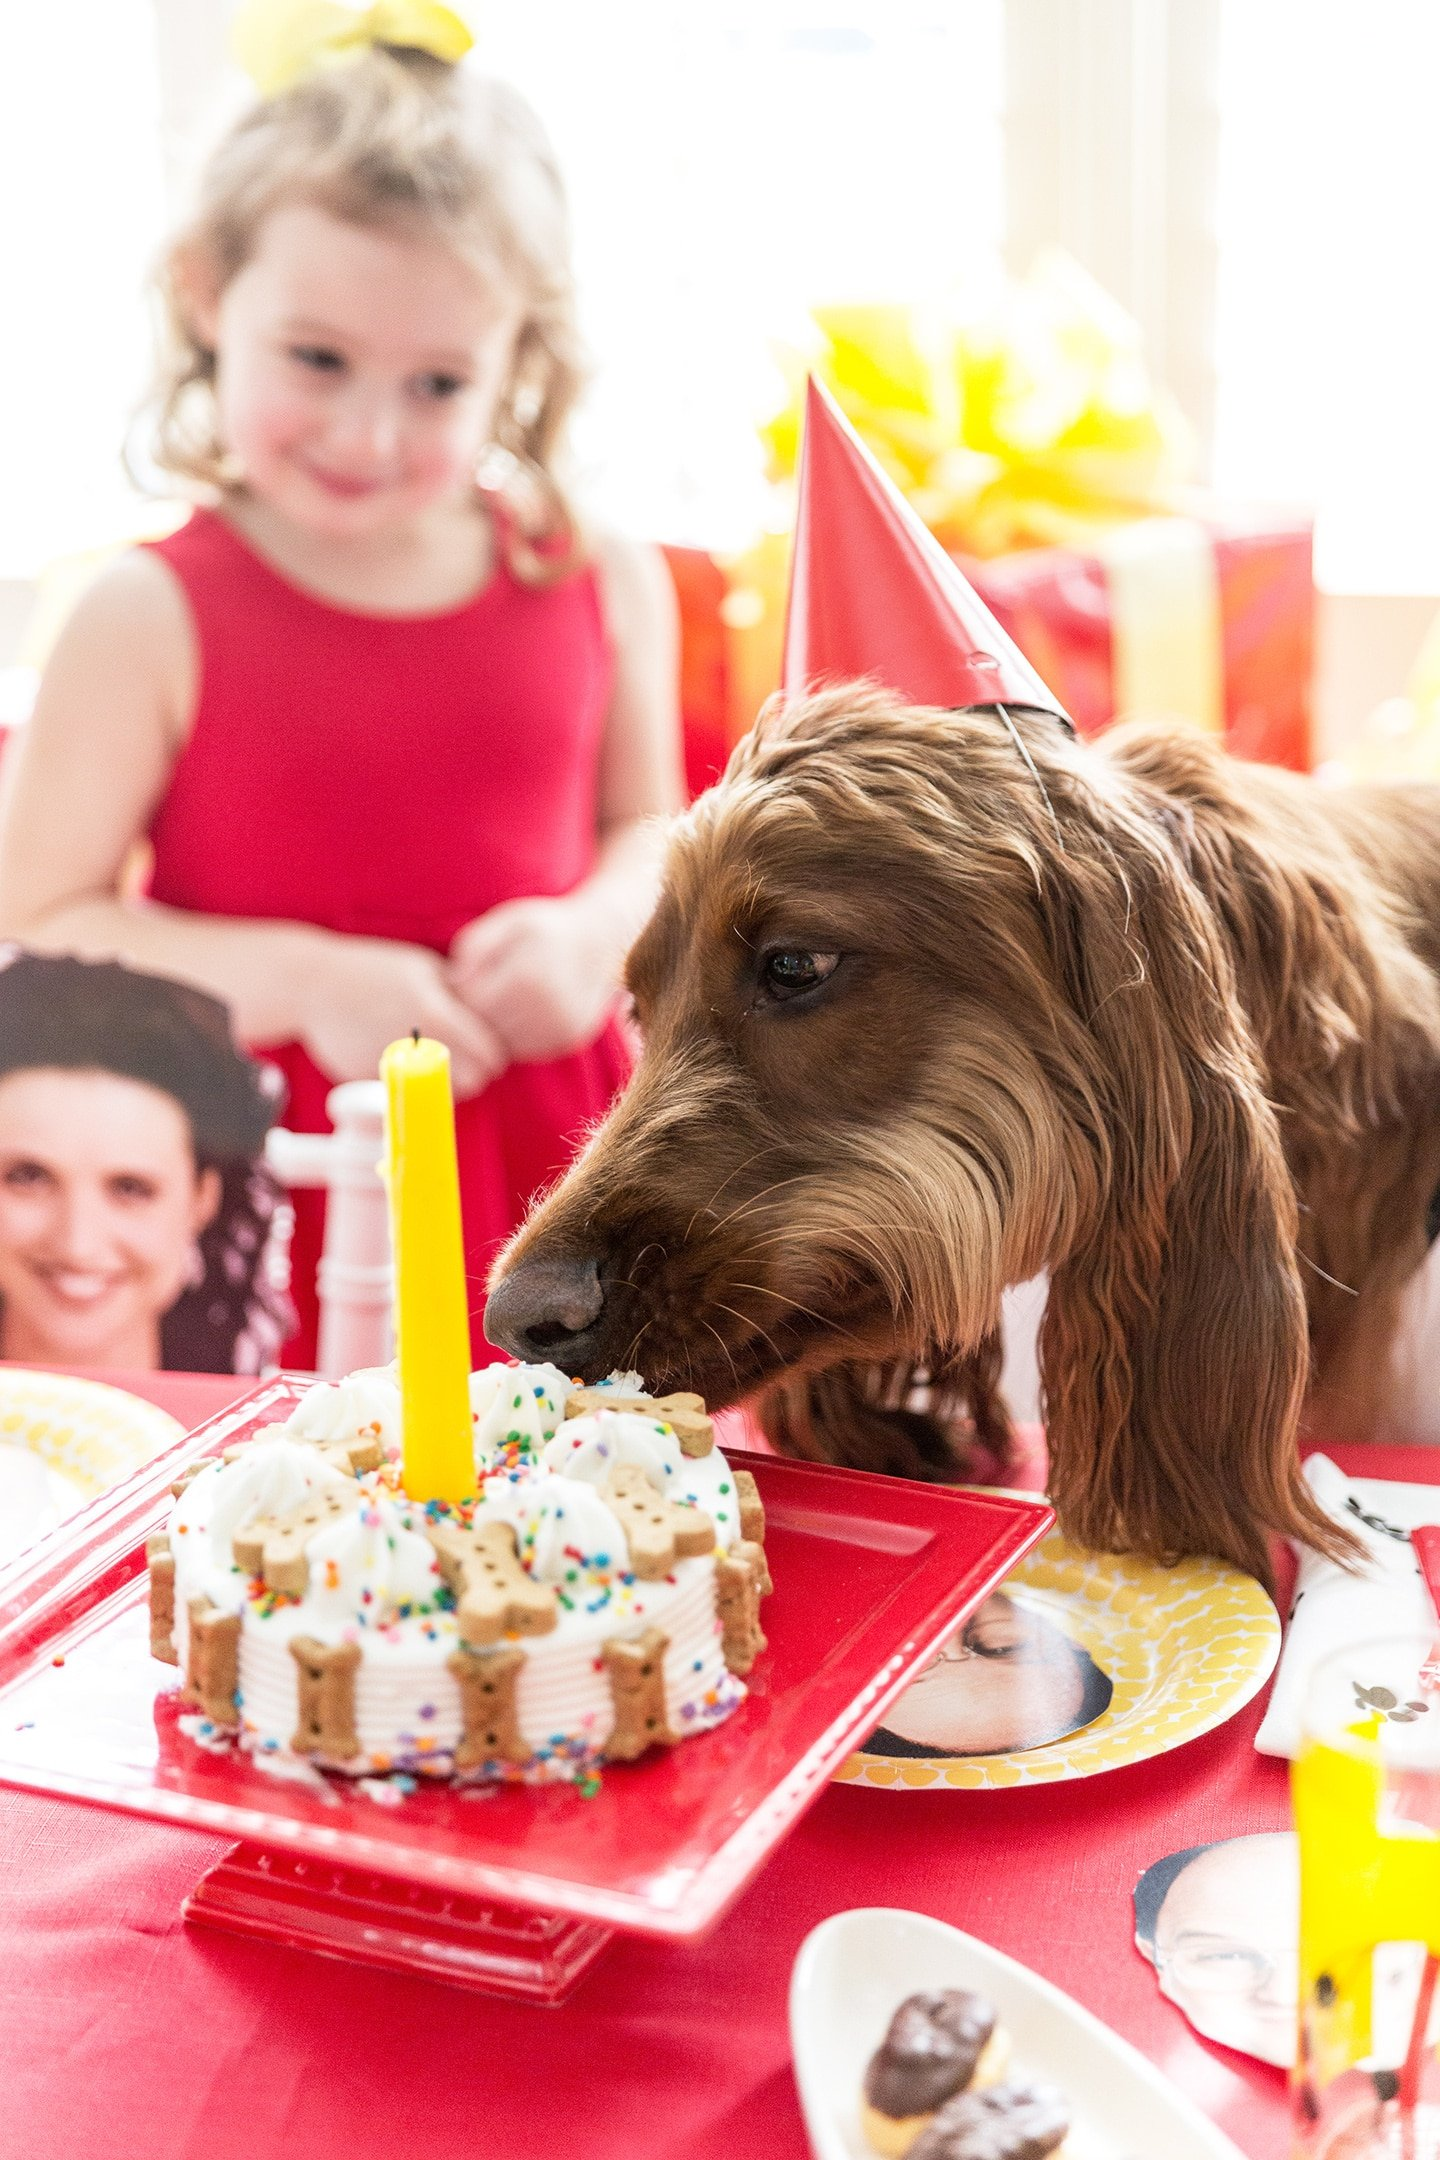 a dog eating a birthday cake with a little girl watching